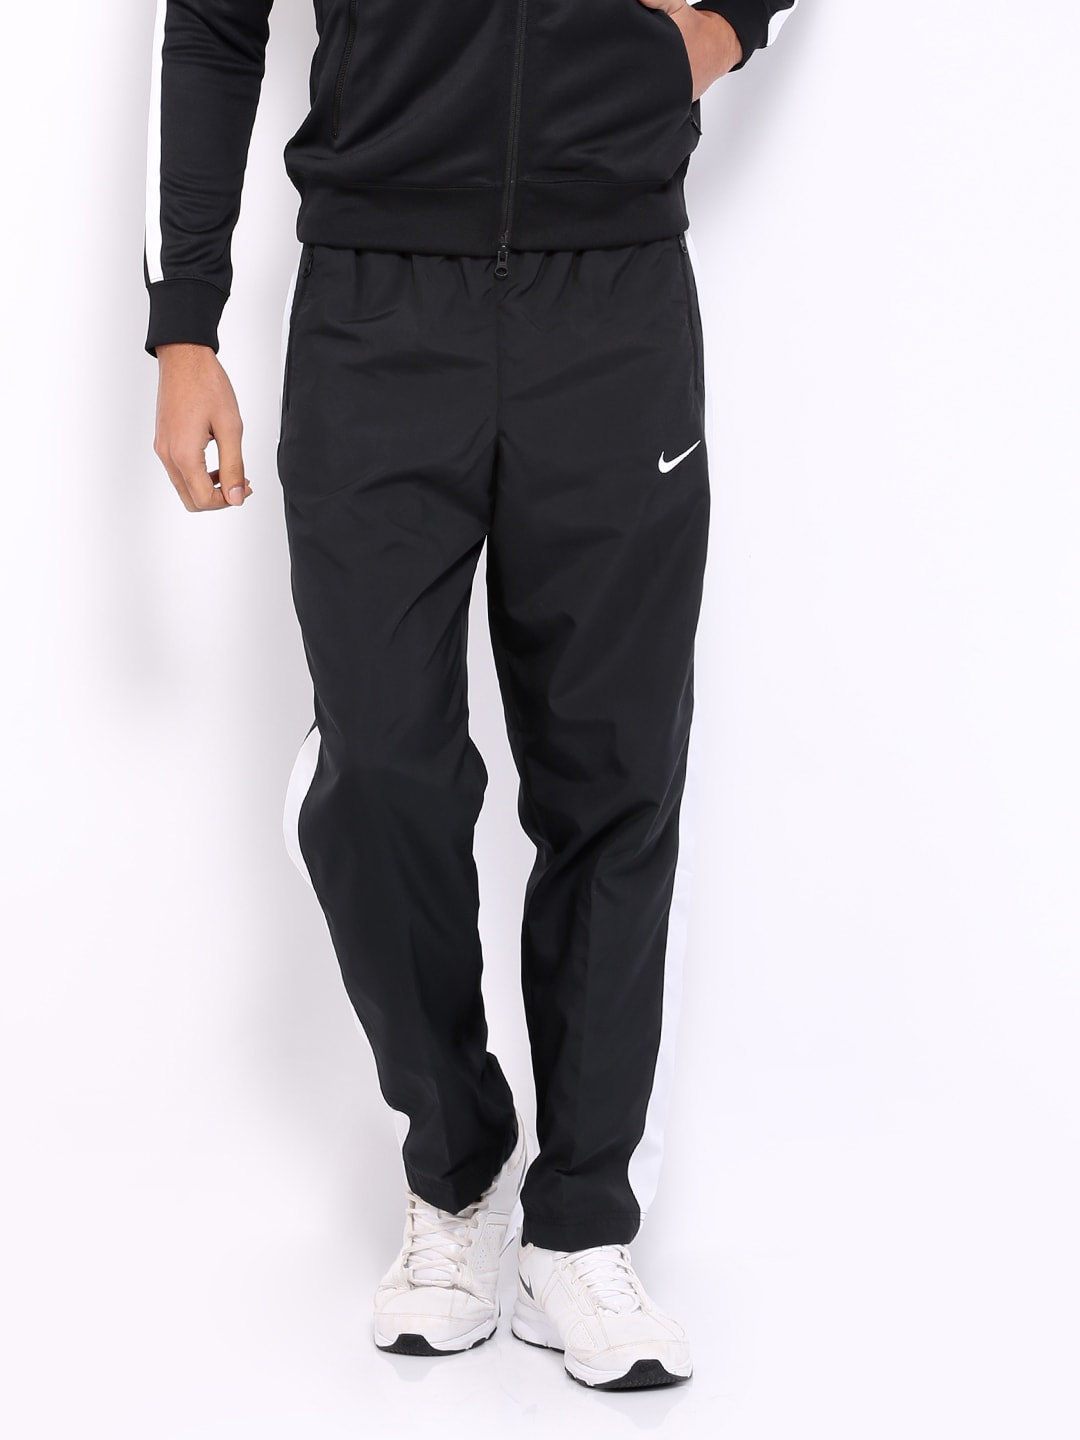 a3948f8f4ad3 Nike 637783-010 Men Black Track Pants - Best Price in India